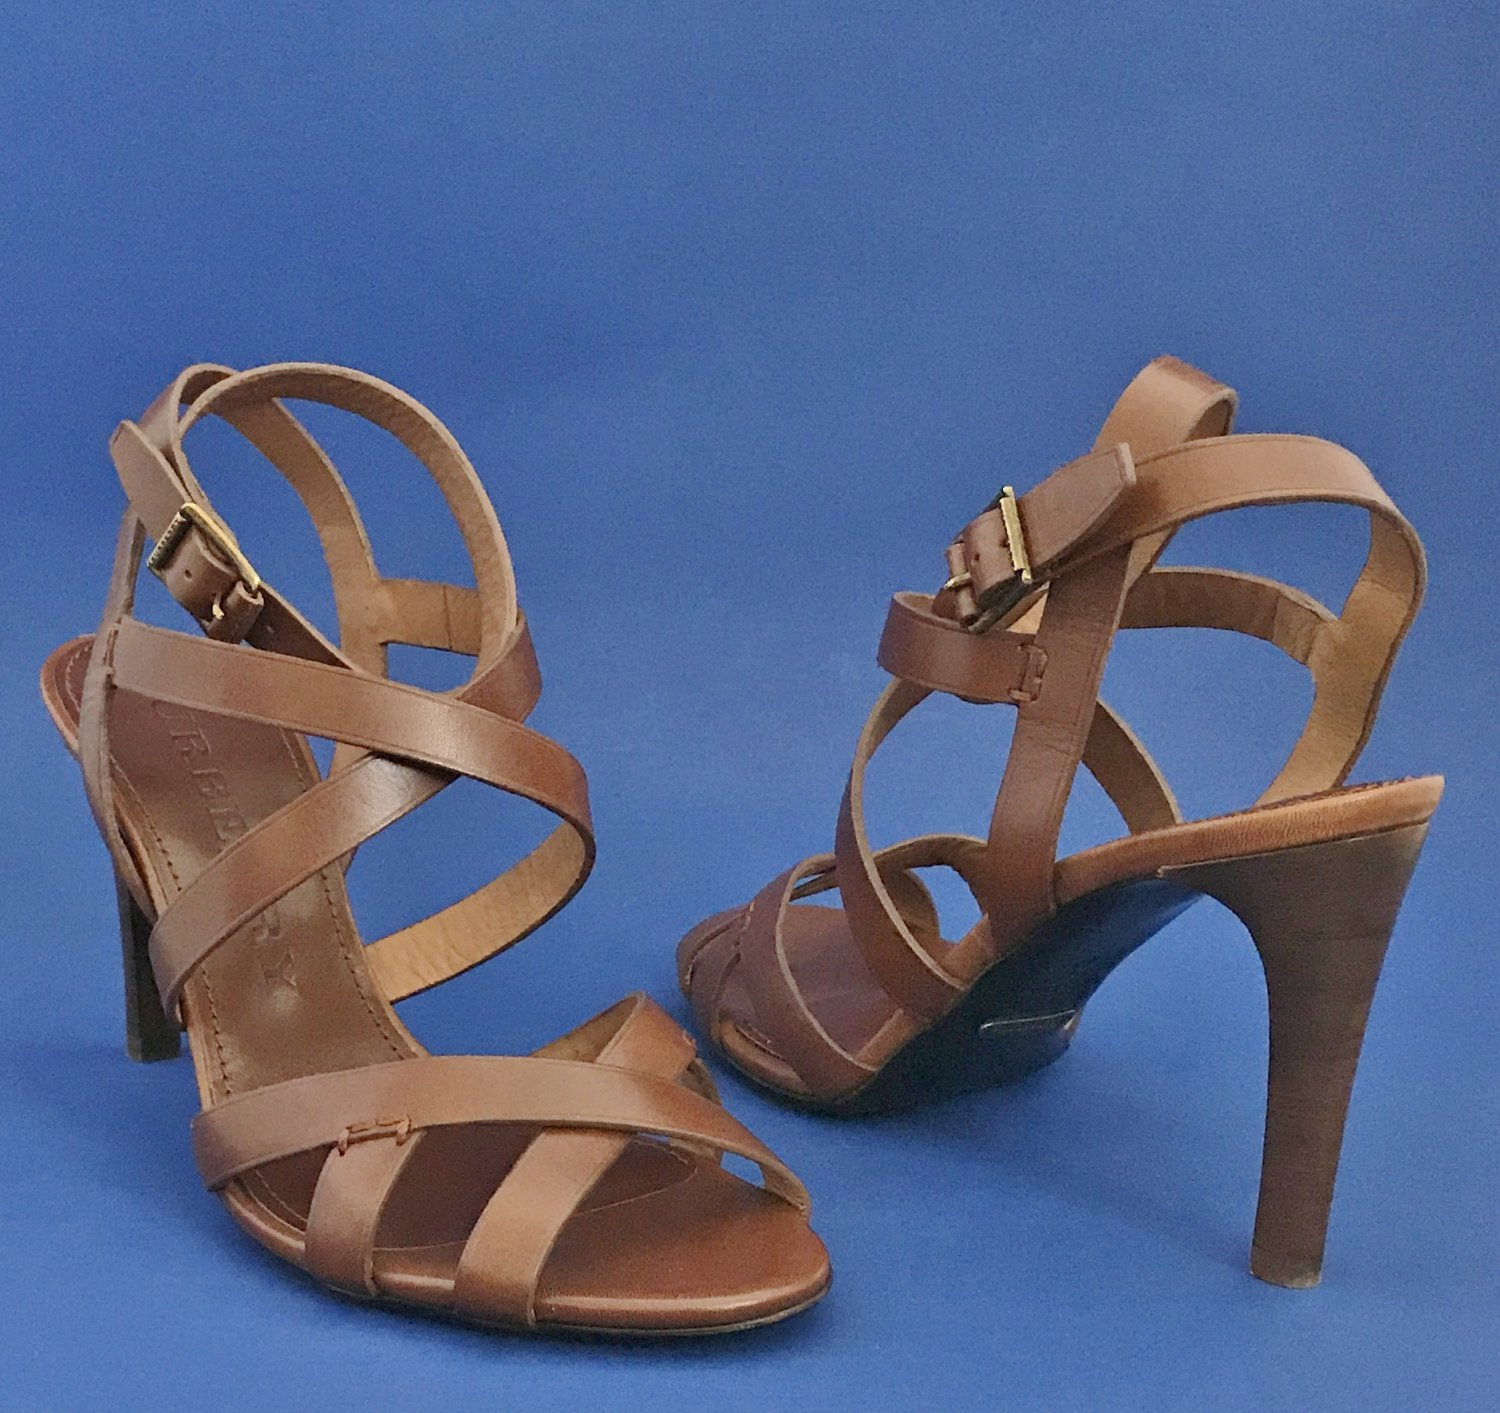 NIB Burberry Brown Leather Ossory Bridle Strappy Sandals Heels - 10